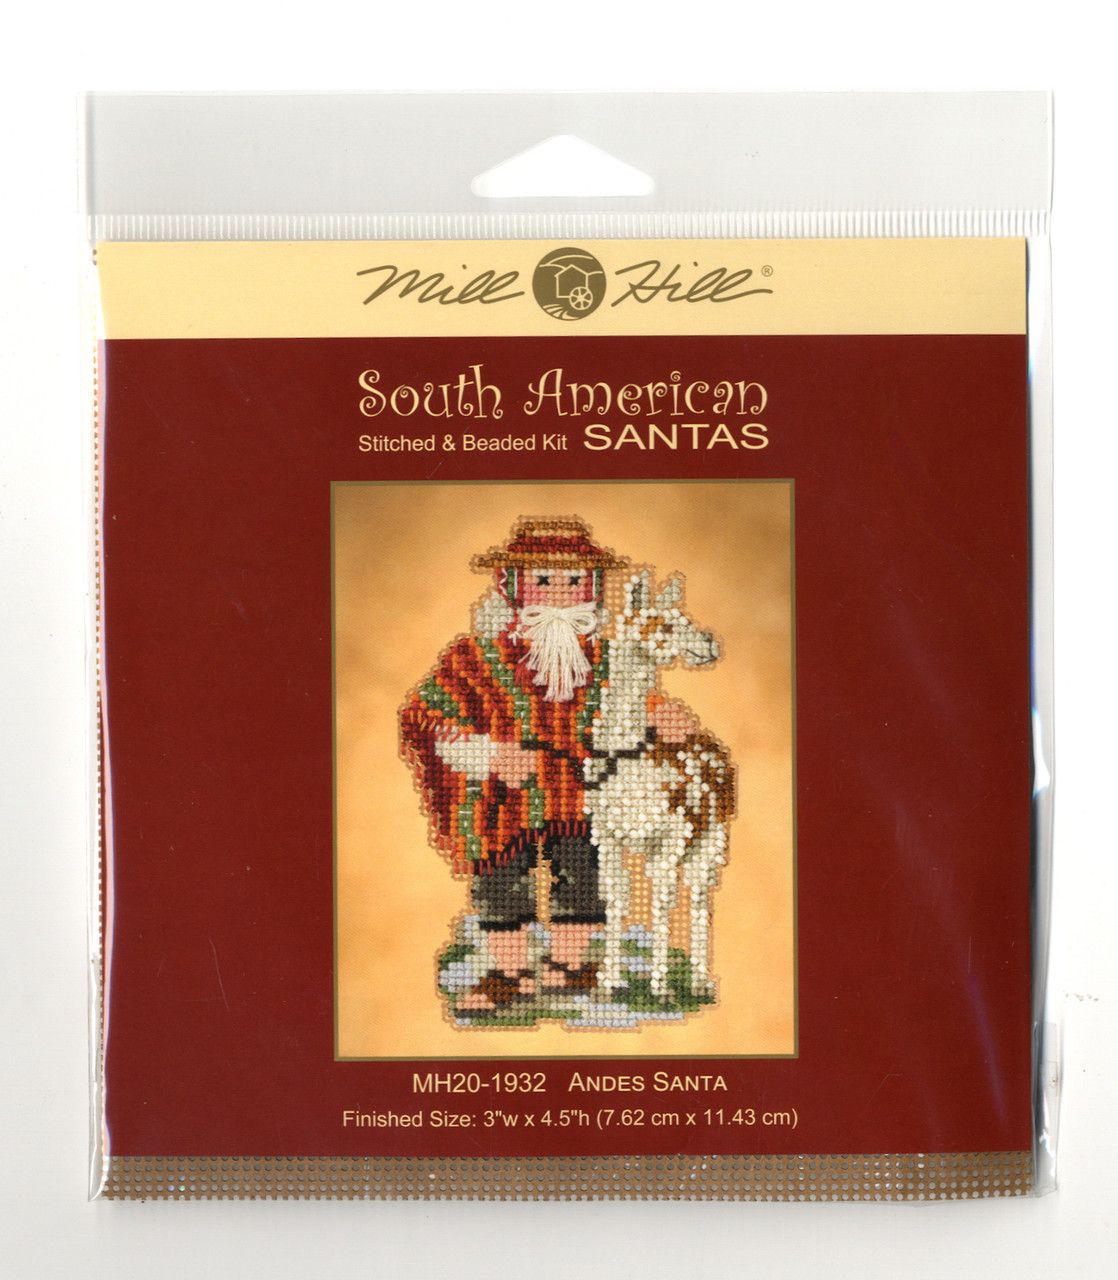 2019 Mill Hill South American Santas - Andes